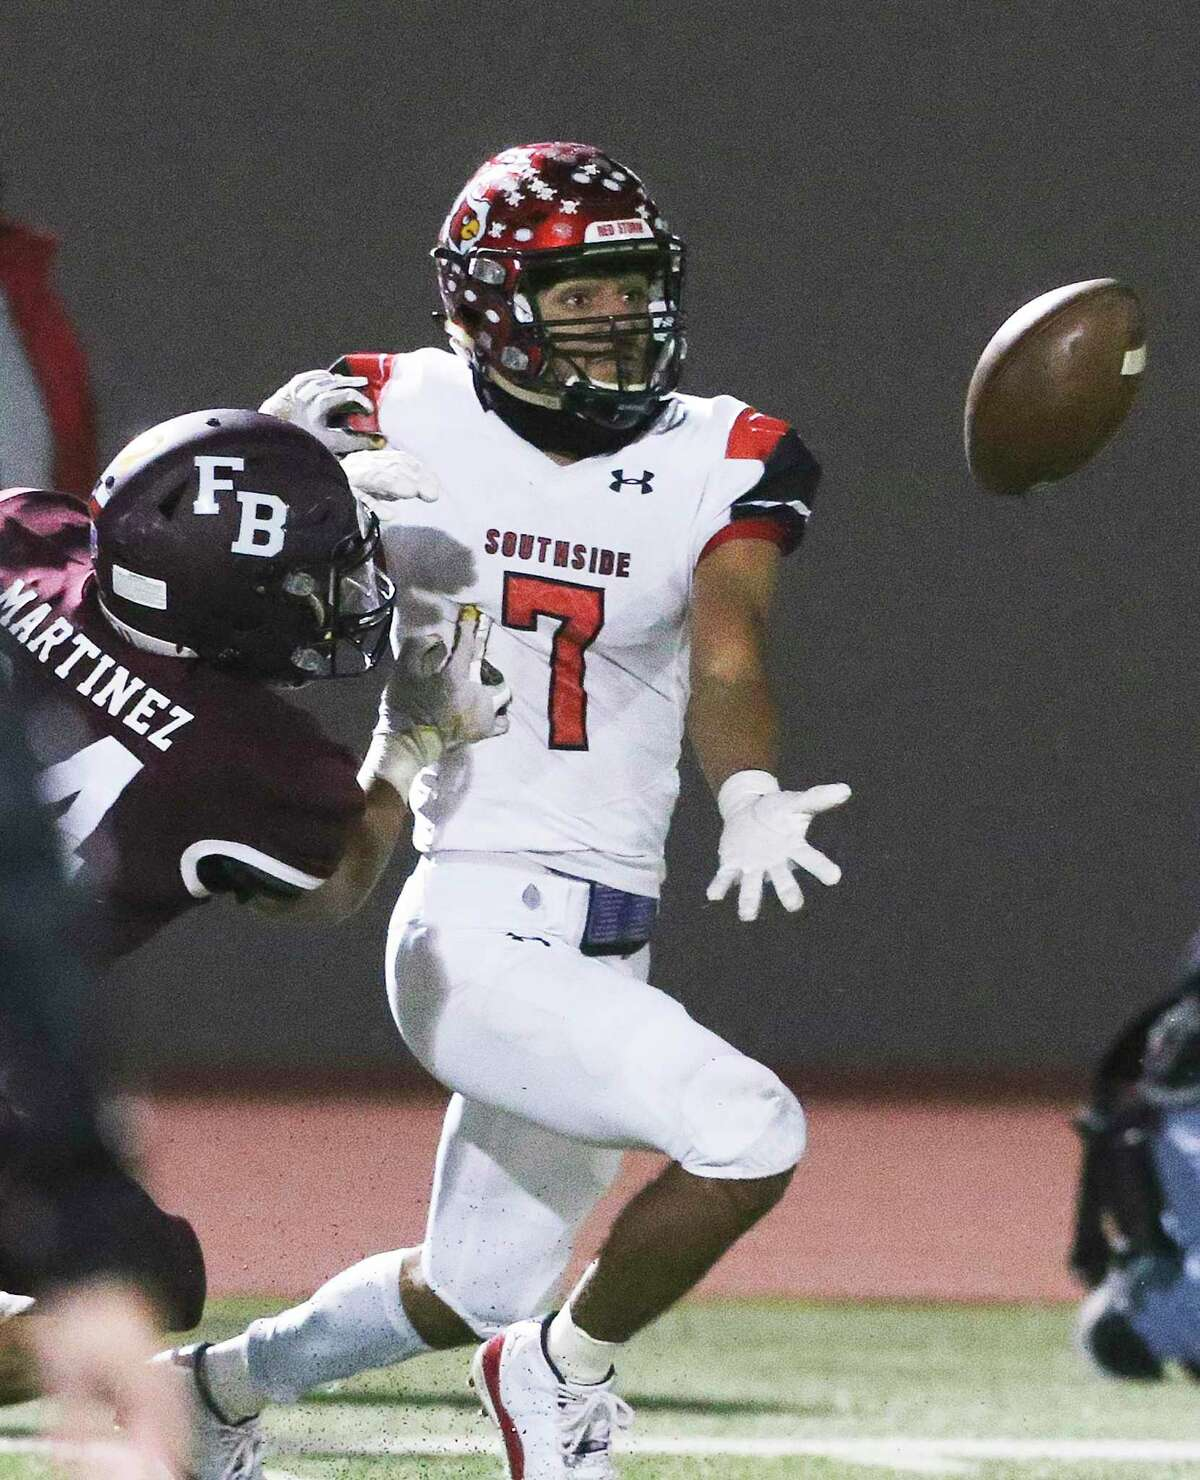 Caleb Camarillo struggles to get to the ball on a long pass for the Cardinals as Southside faces Flour Bluff in the high school playoffs at Alamo Stadium on December 17, 2020.